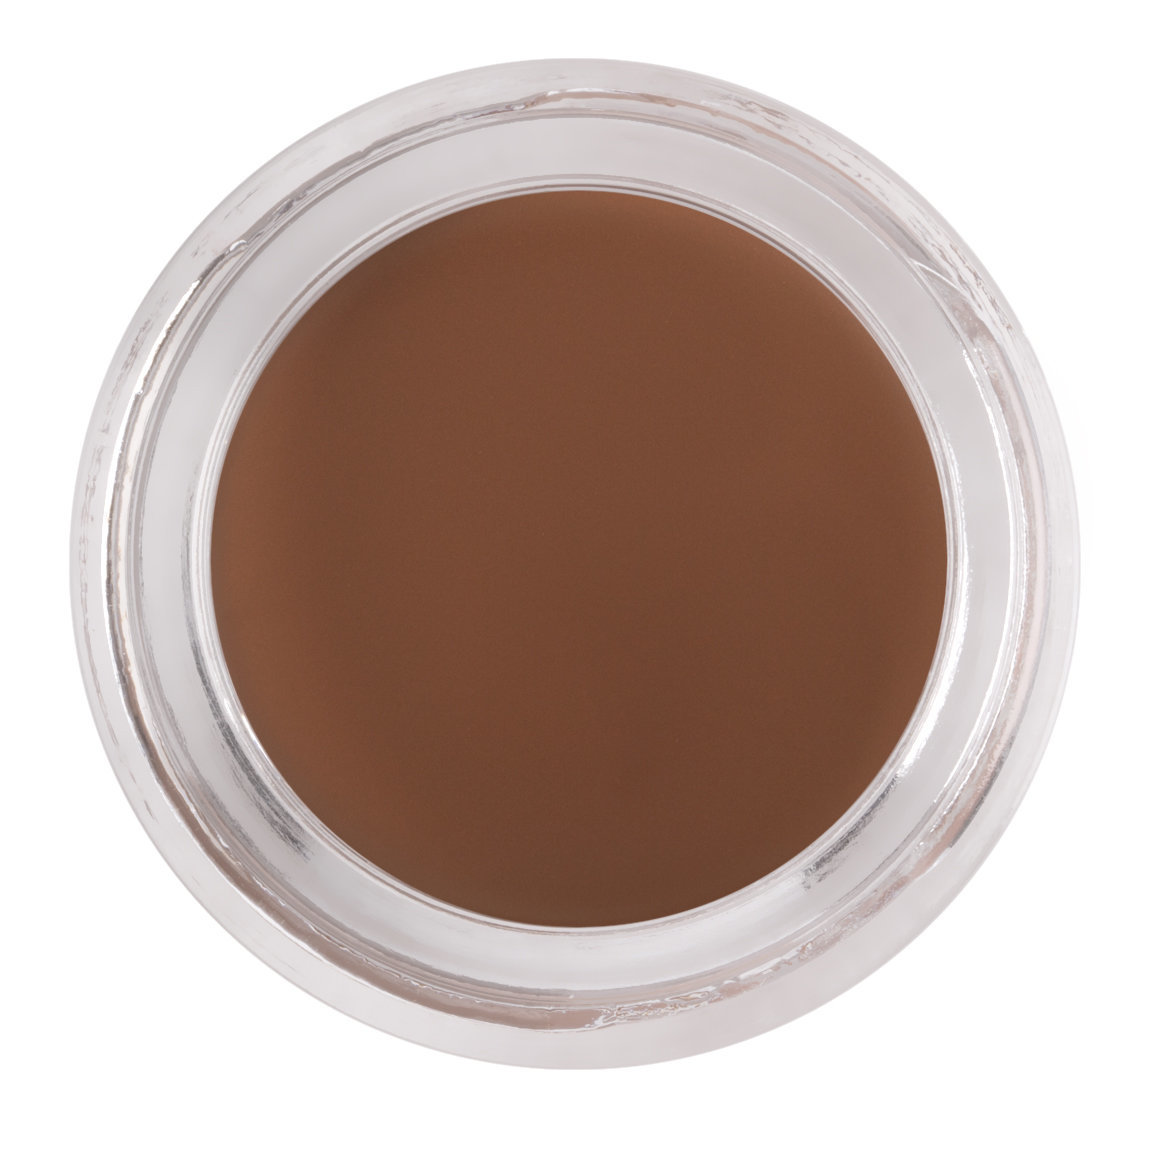 Anastasia Beverly Hills Dipbrow Pomade Caramel alternative view 1.